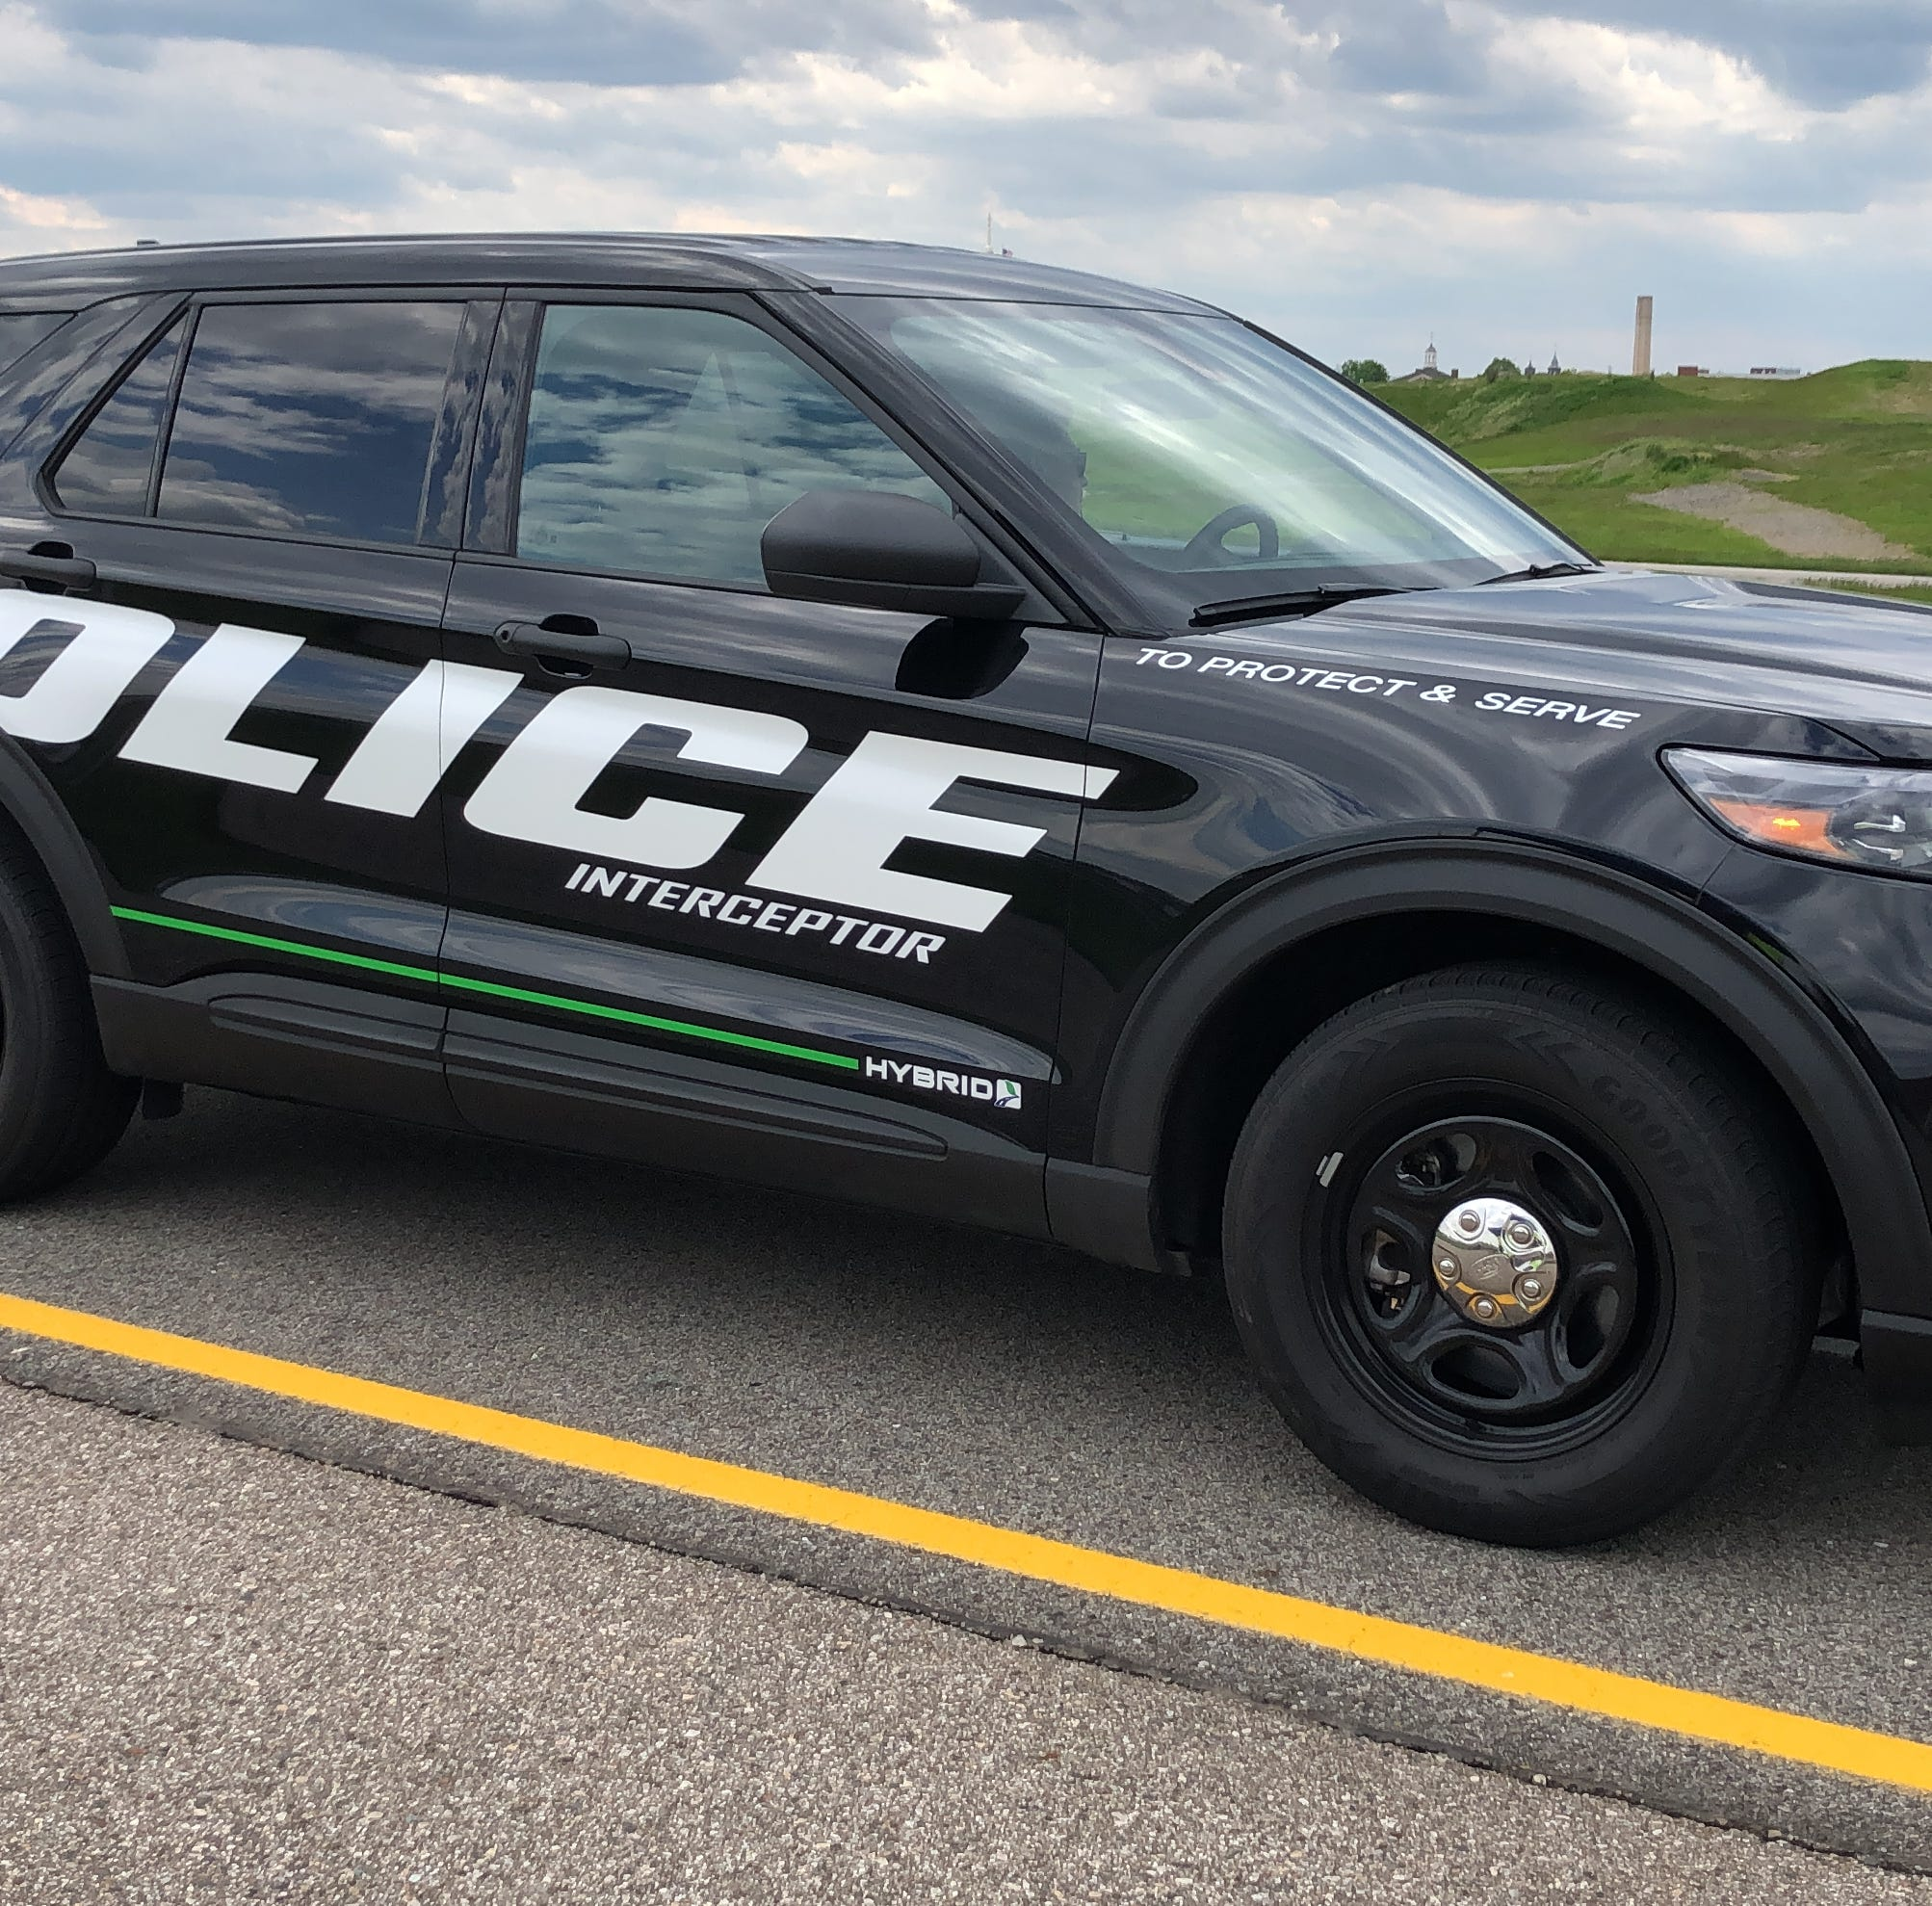 I got to drive Ford's new hybrid SUV built for cops. They will love it